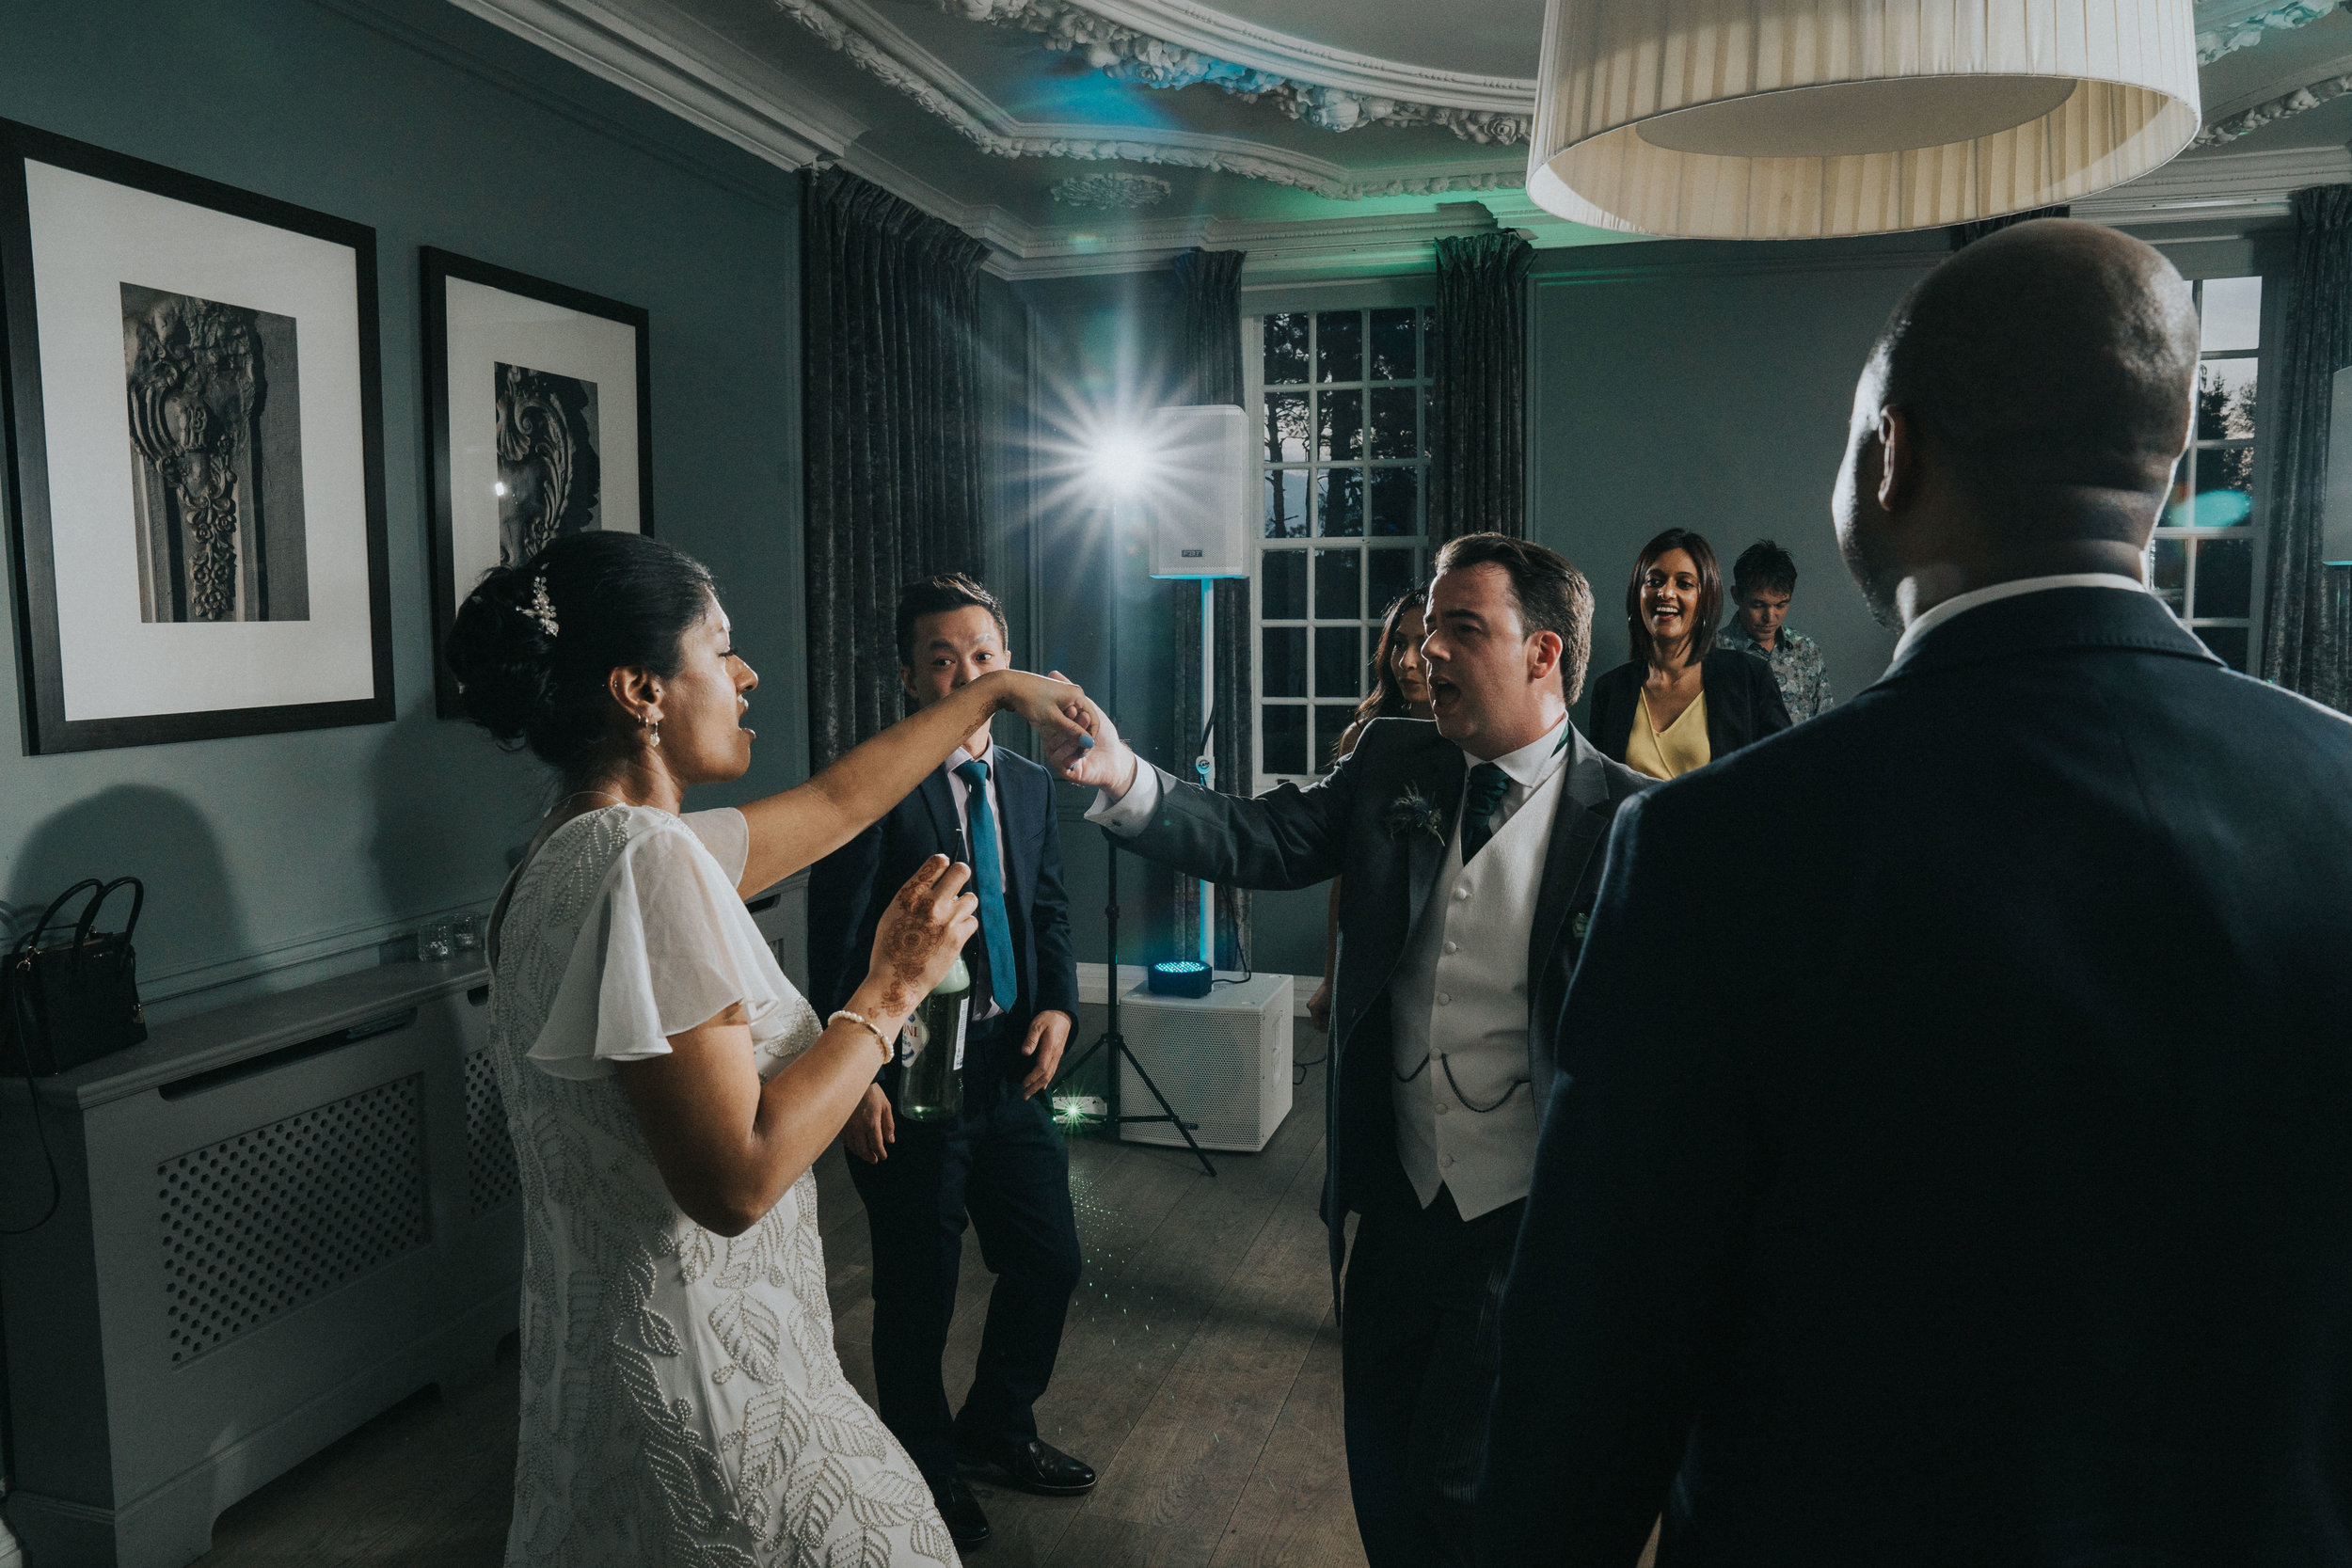 gorse-hill-hotel-wedding-photography-videography-surrey-london-63